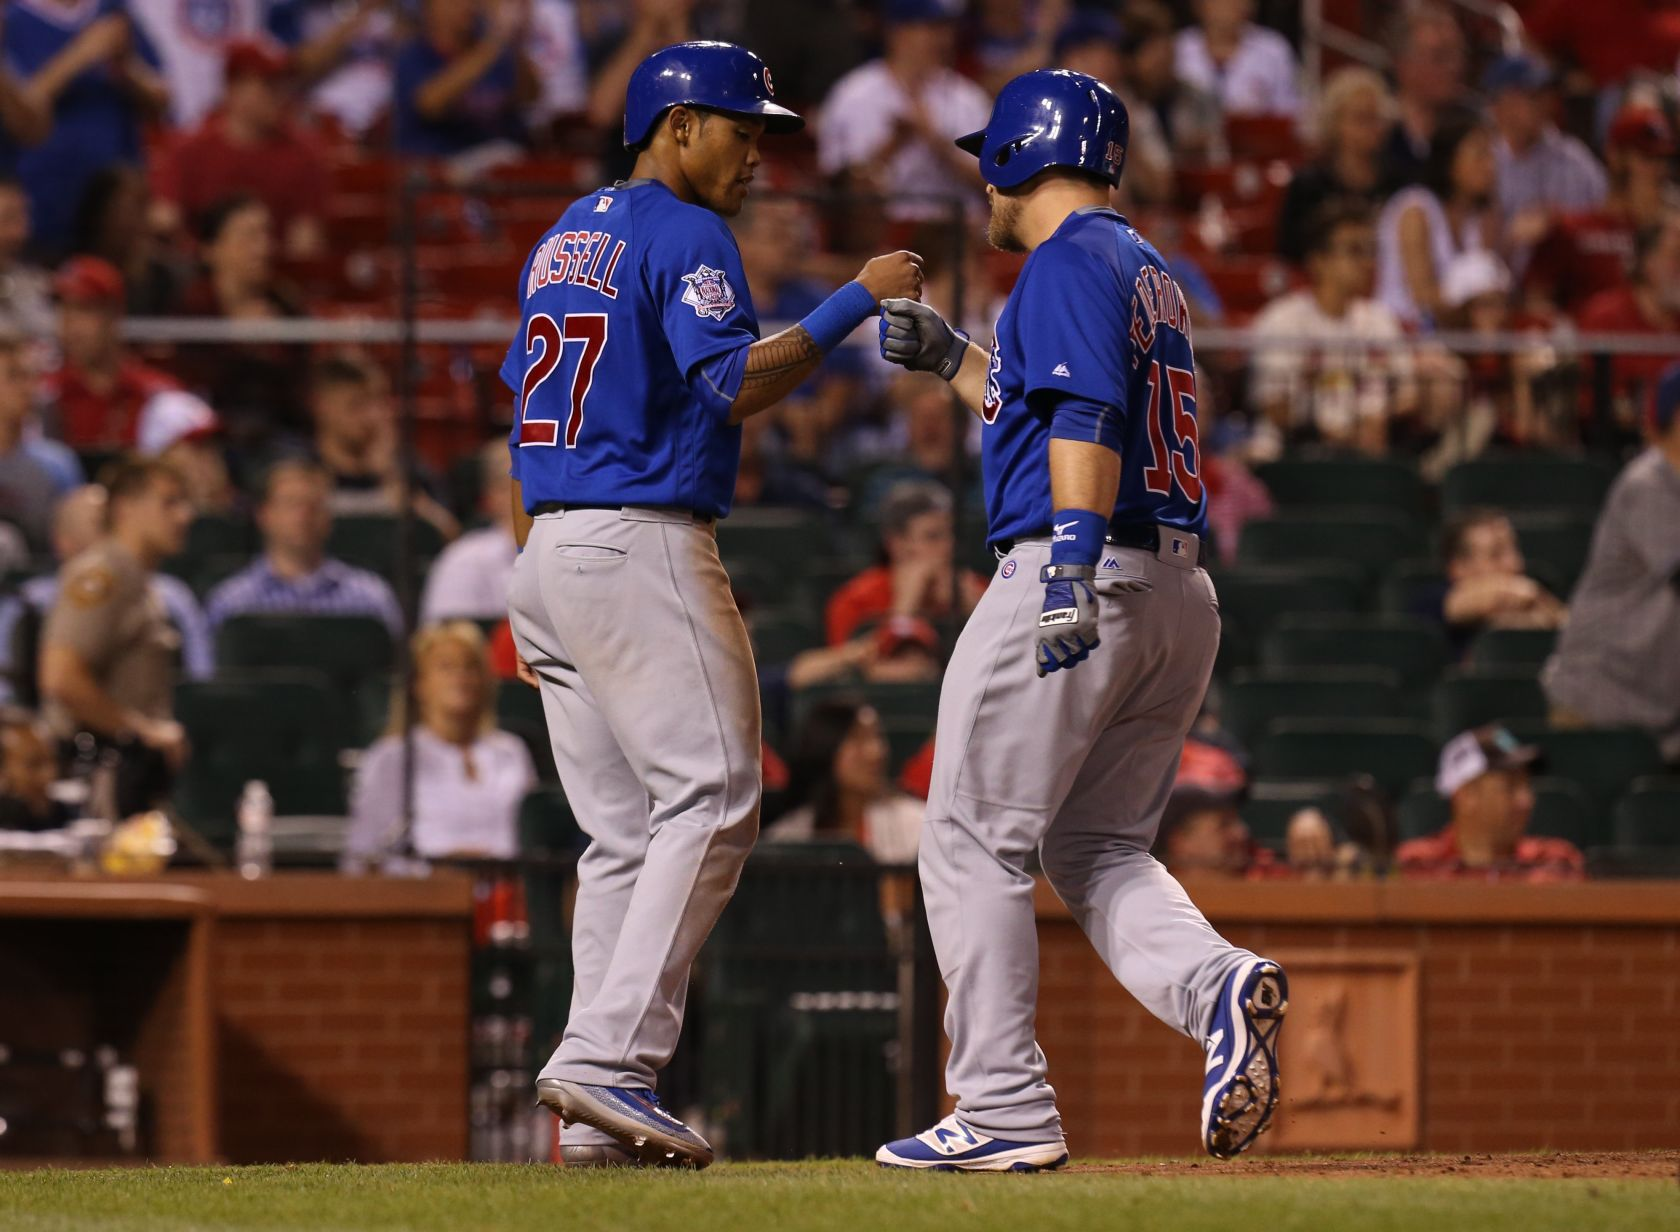 Cubs break out just as Maddon expected